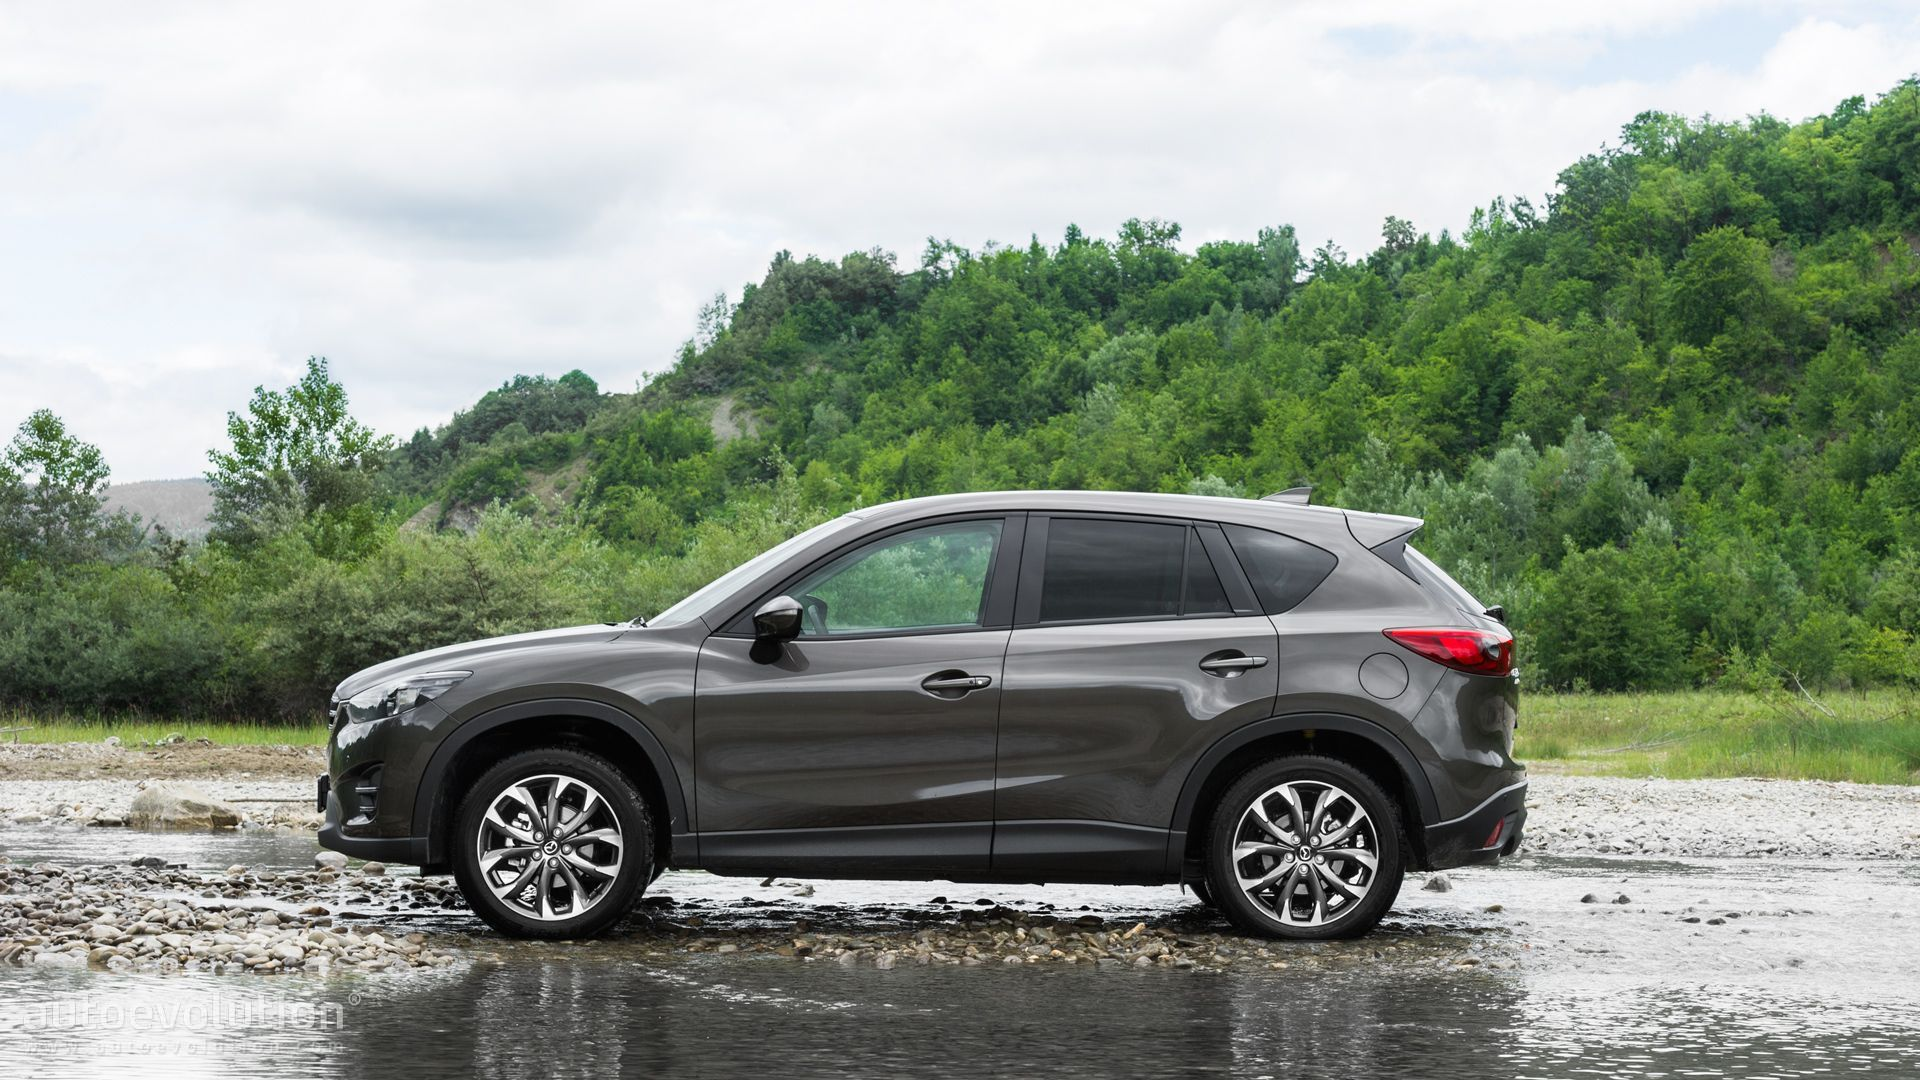 Sick Car Wallpapers 2016 Mazda Cx 5 Review Autoevolution